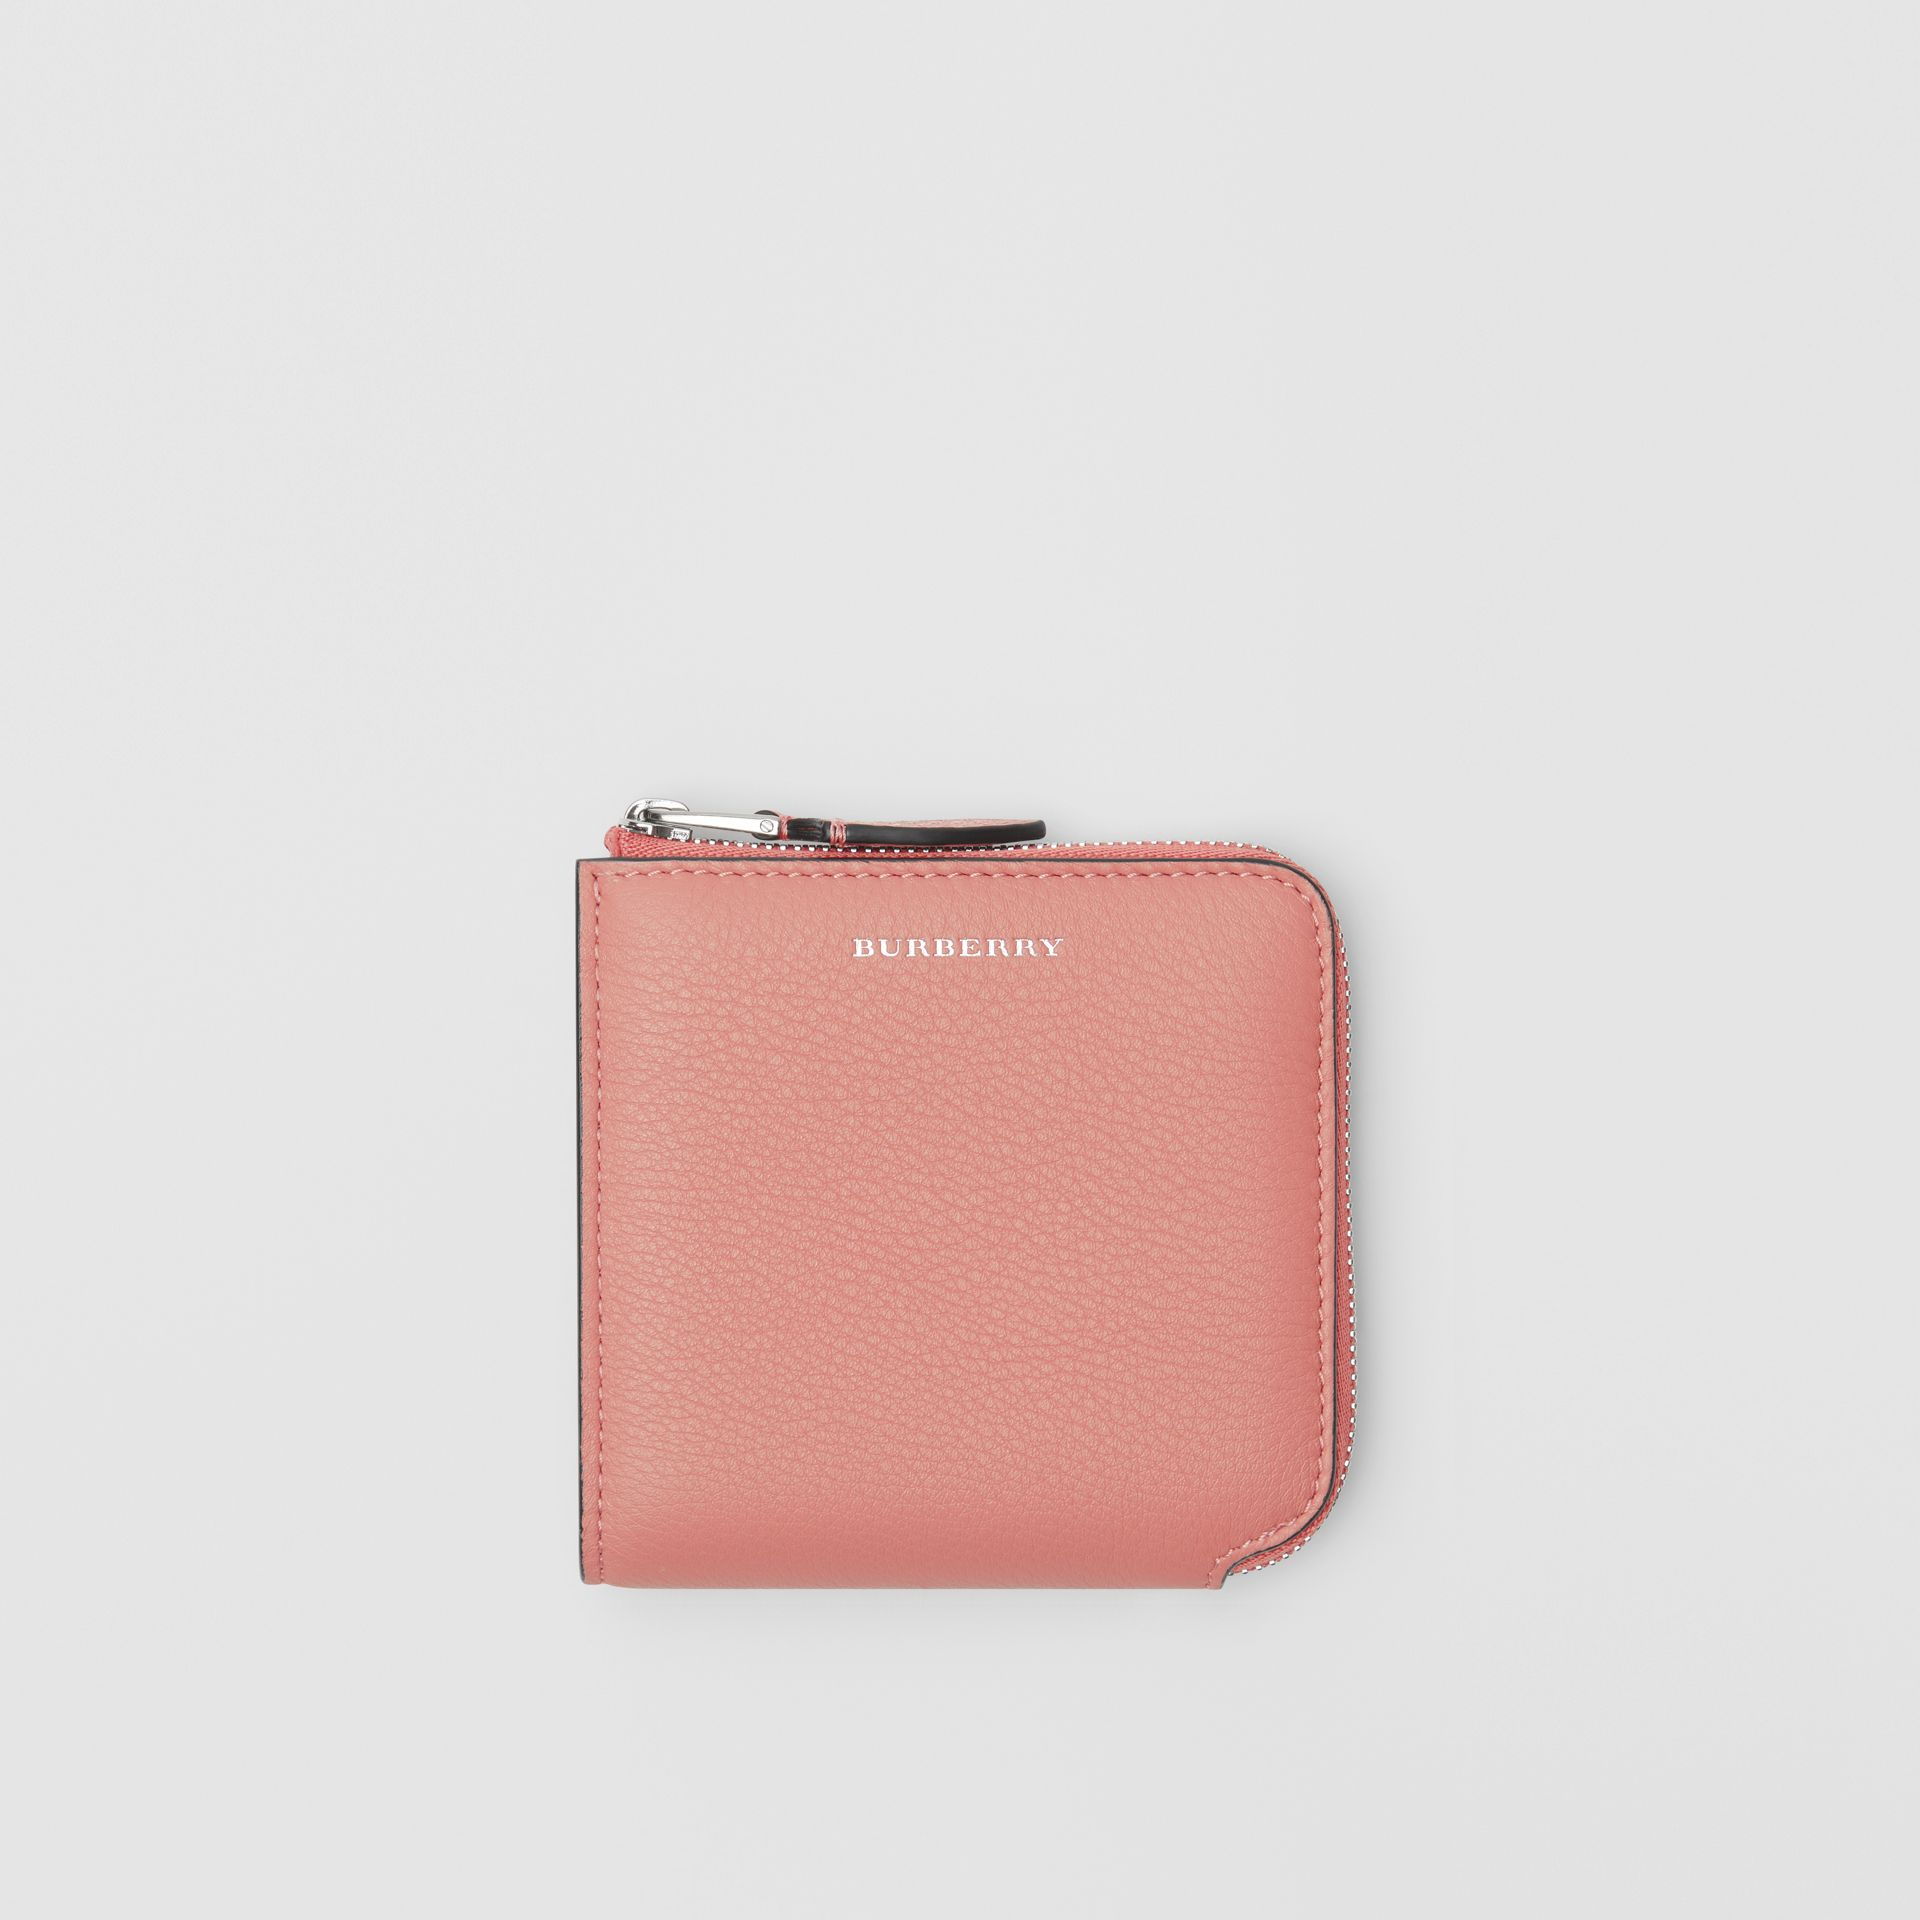 Grainy Leather Square Ziparound Wallet in Dusty Rose - Women | Burberry Singapore - gallery image 0